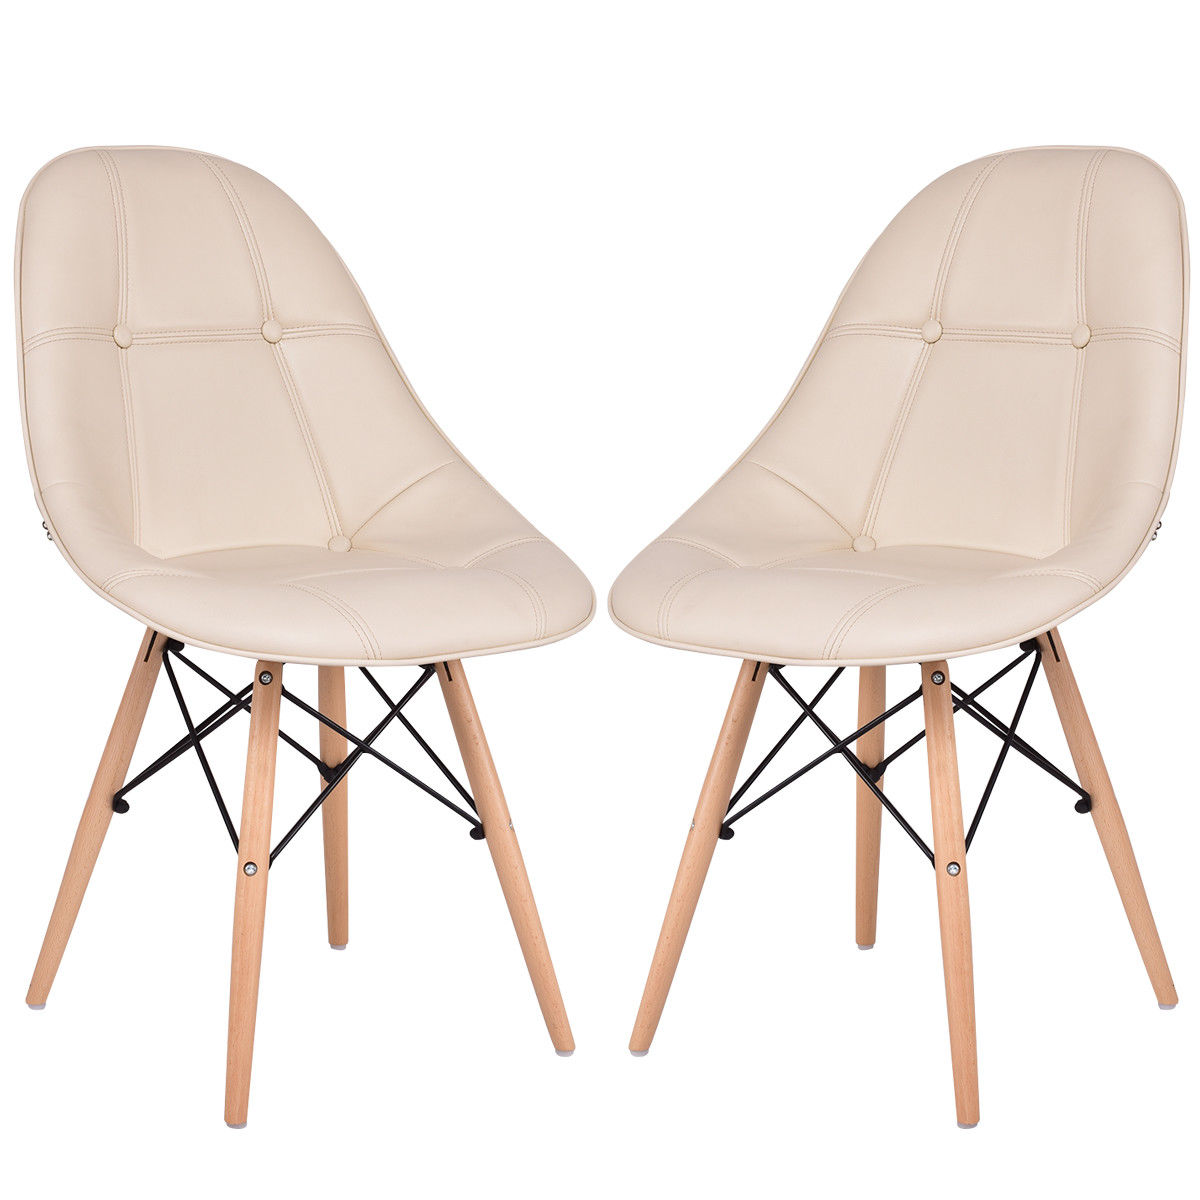 Marvelous Details About Giantex Dining Side Chair Armless Pu Leather Seat With Wood Legs Beige Gmtry Best Dining Table And Chair Ideas Images Gmtryco